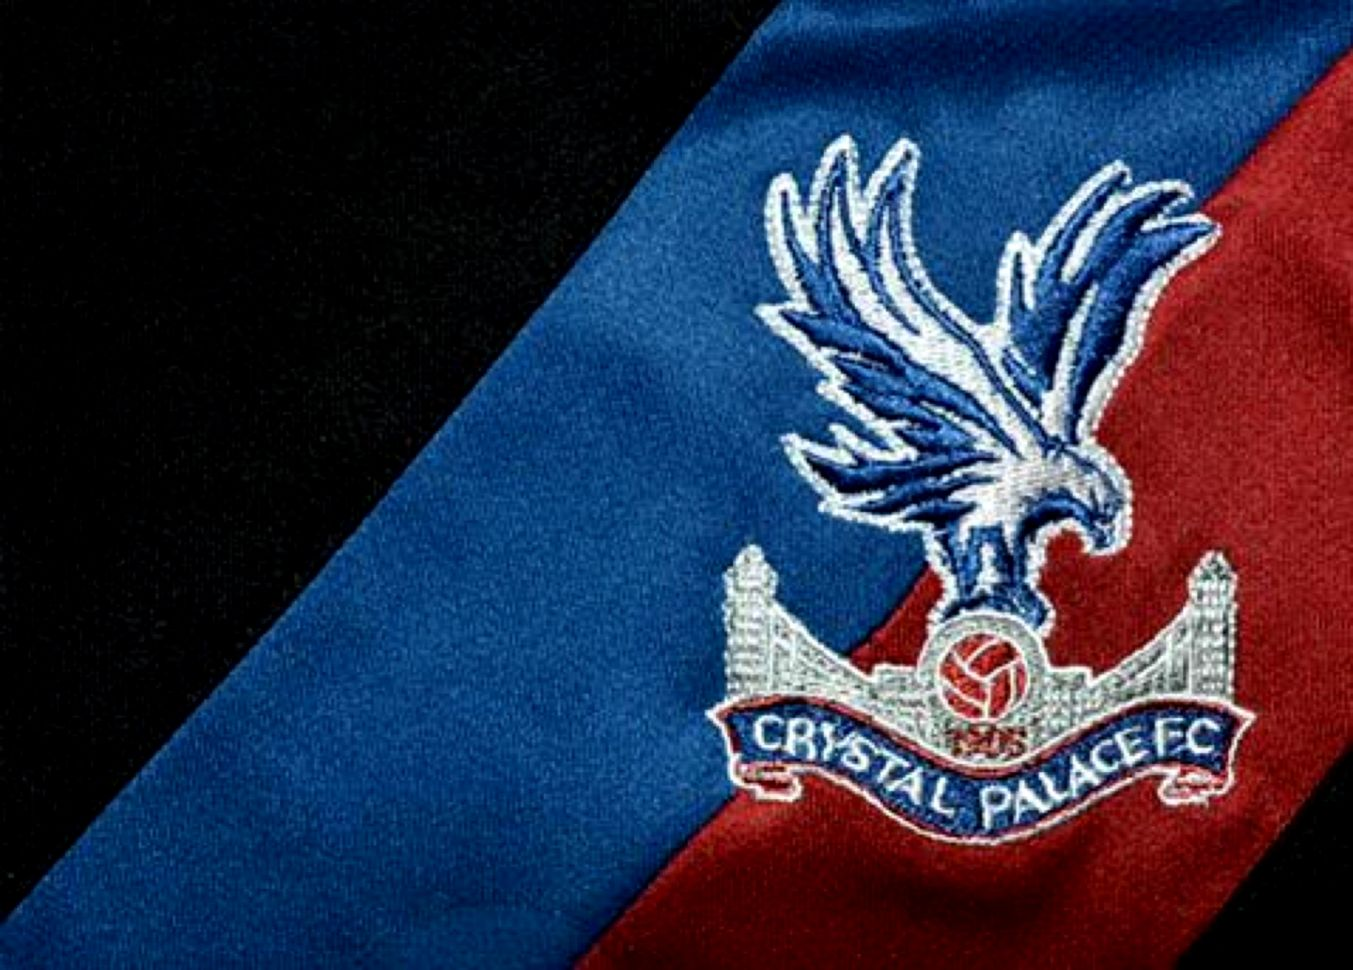 Crystal Palace Logo Wallpaper Hd Wallpapers Image